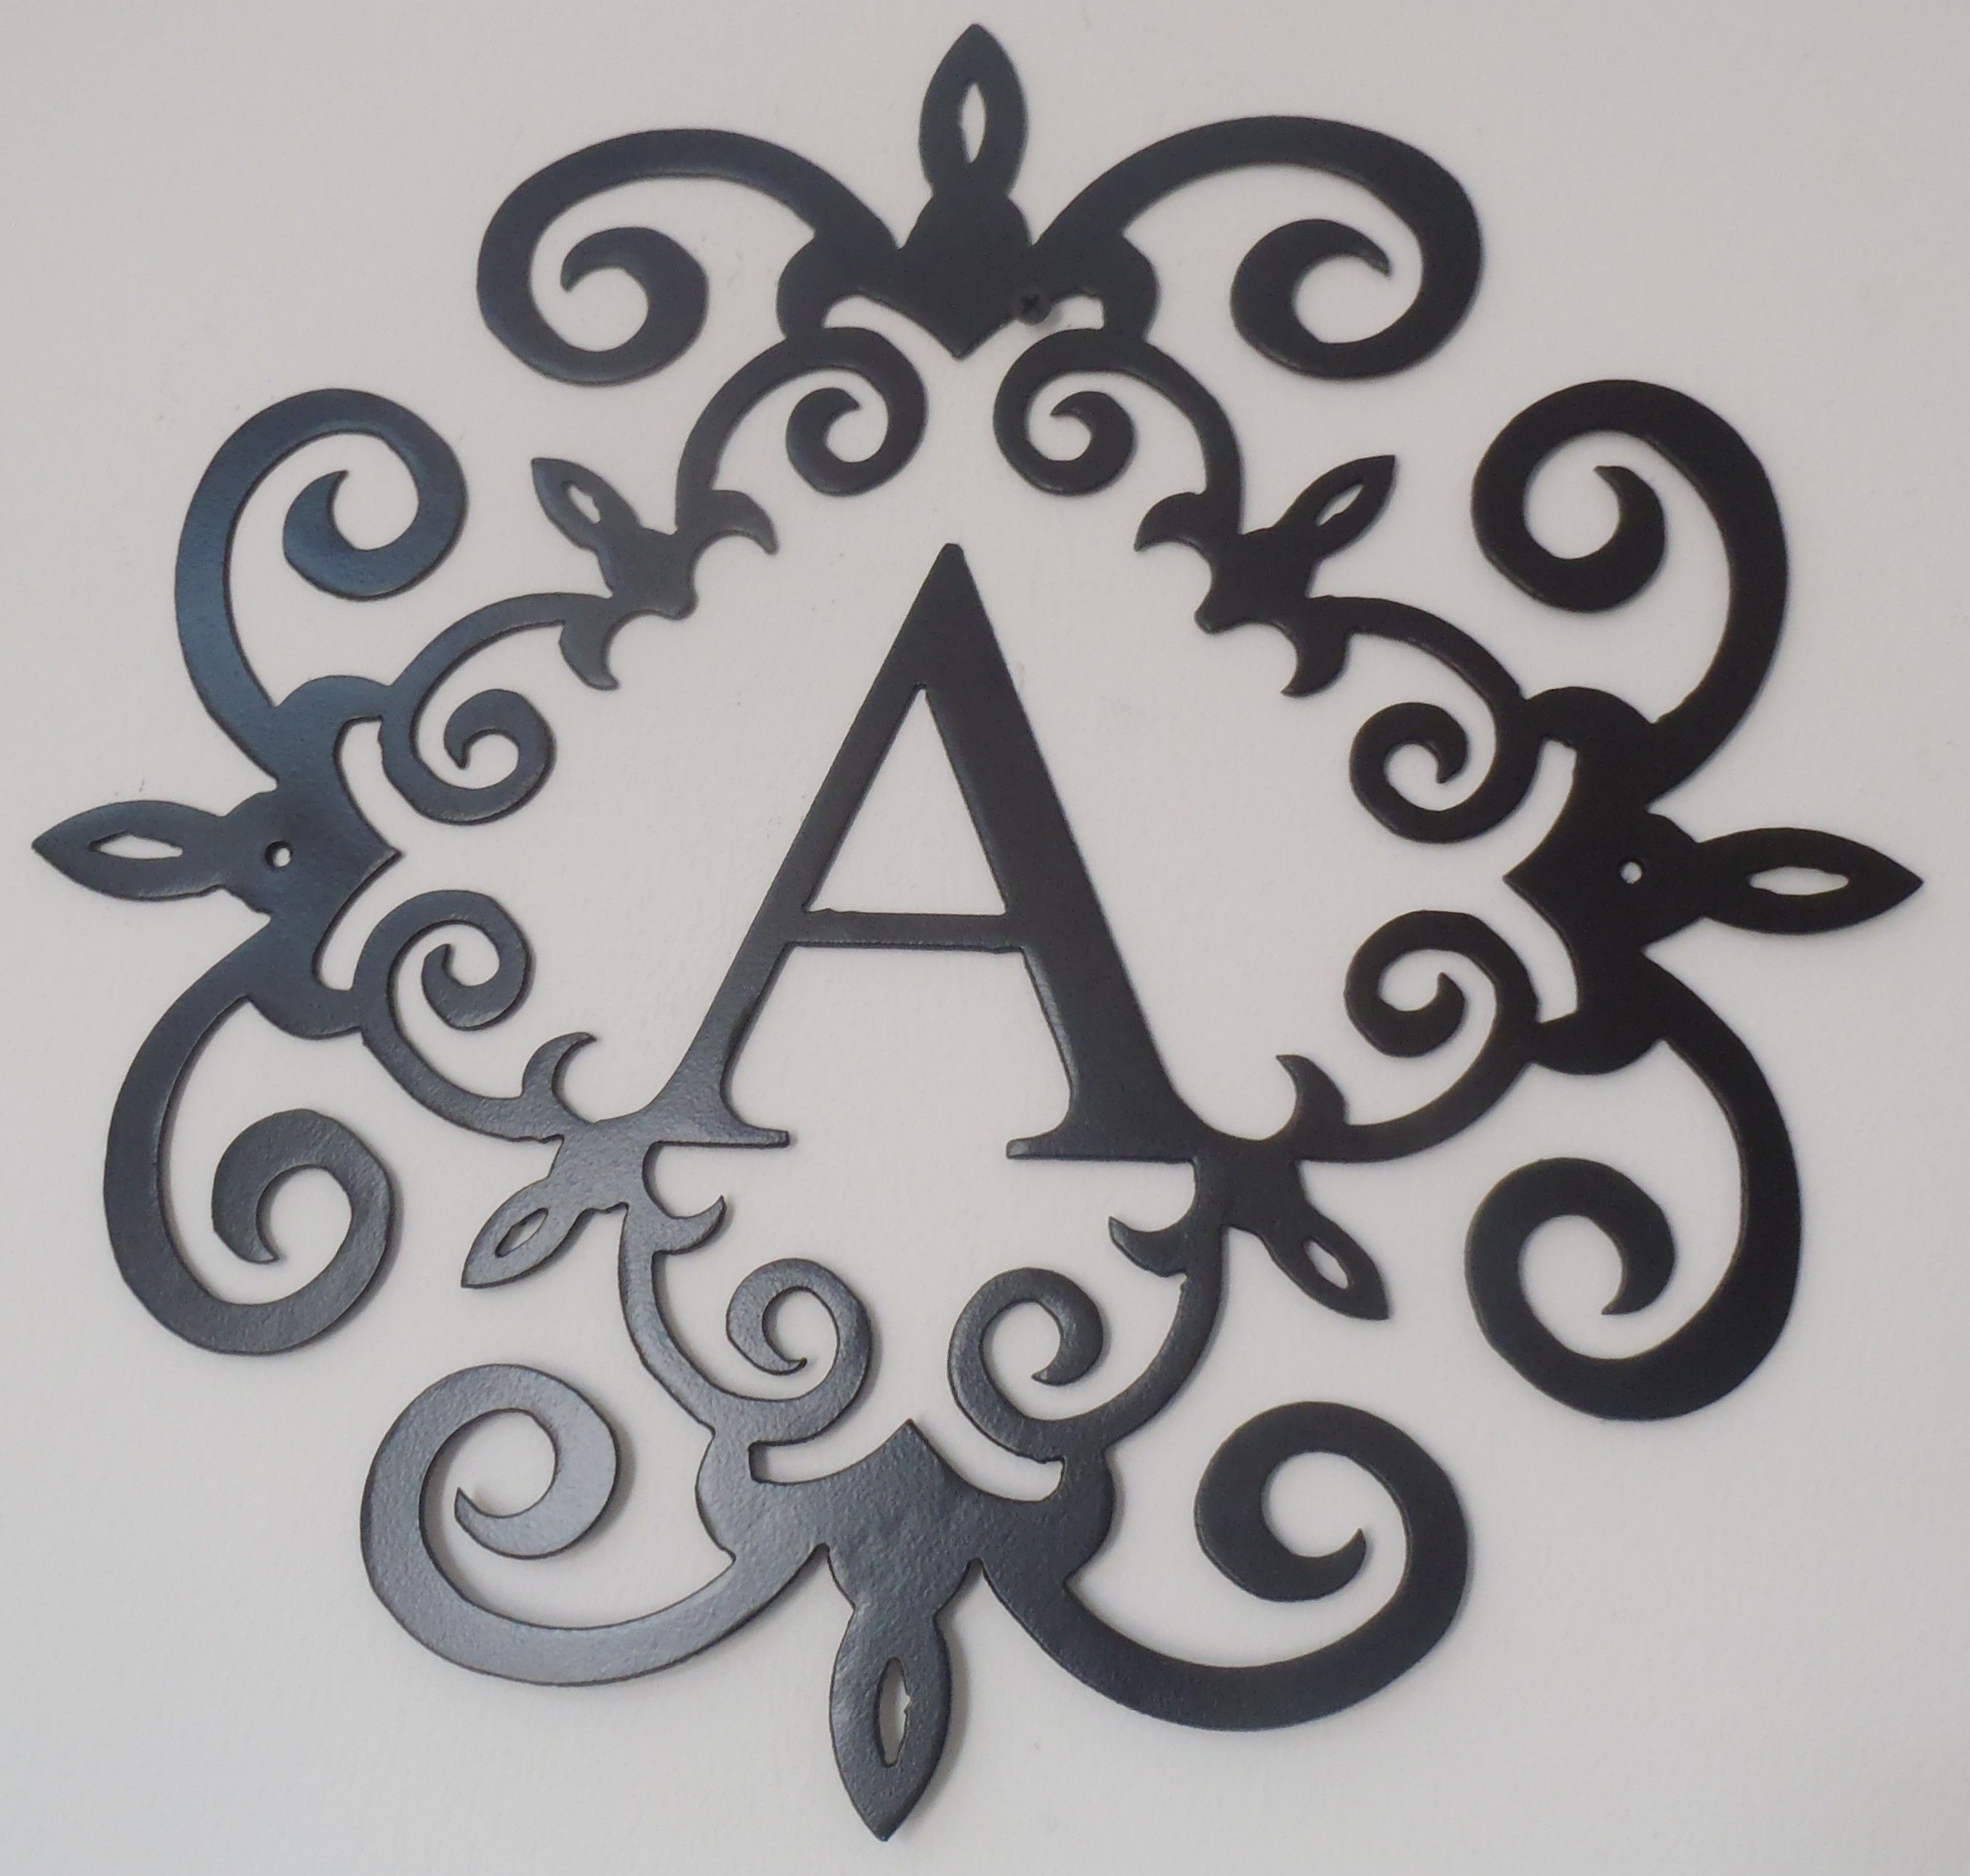 Metal Letter B Wall Decor : Family initial monogram inside a metal scroll with